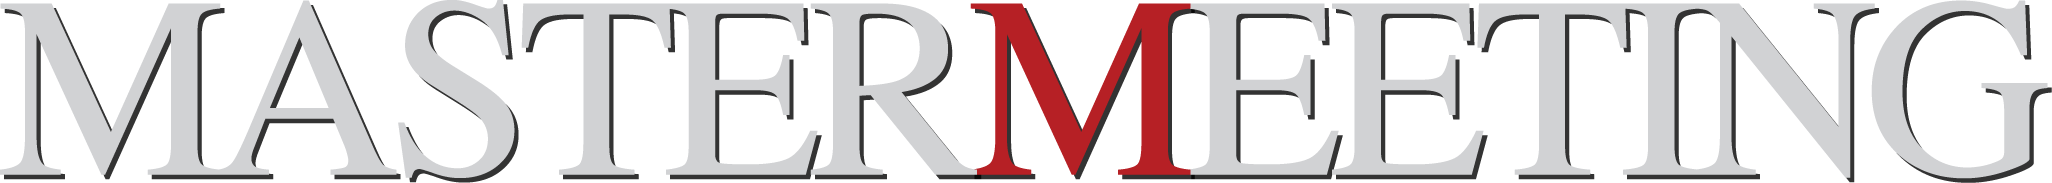 mbhc-hotel-consulting-rome-master-meeting-logo